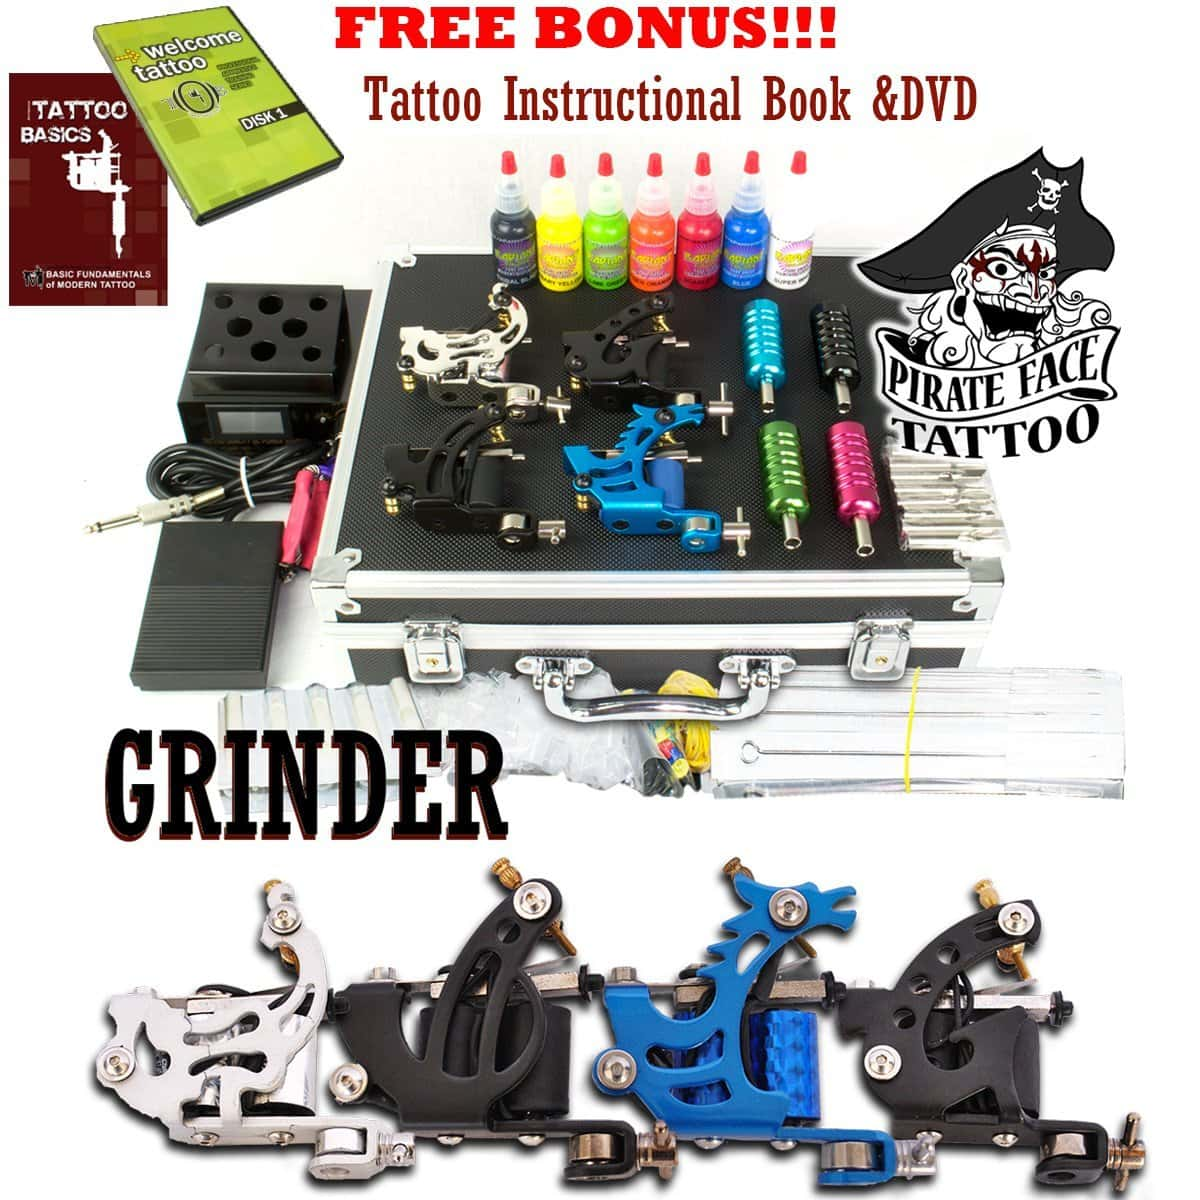 GRINDER Tattoo Kit by Pirate Face Tattoo / 4 Tattoo Machine Guns - Power Supply